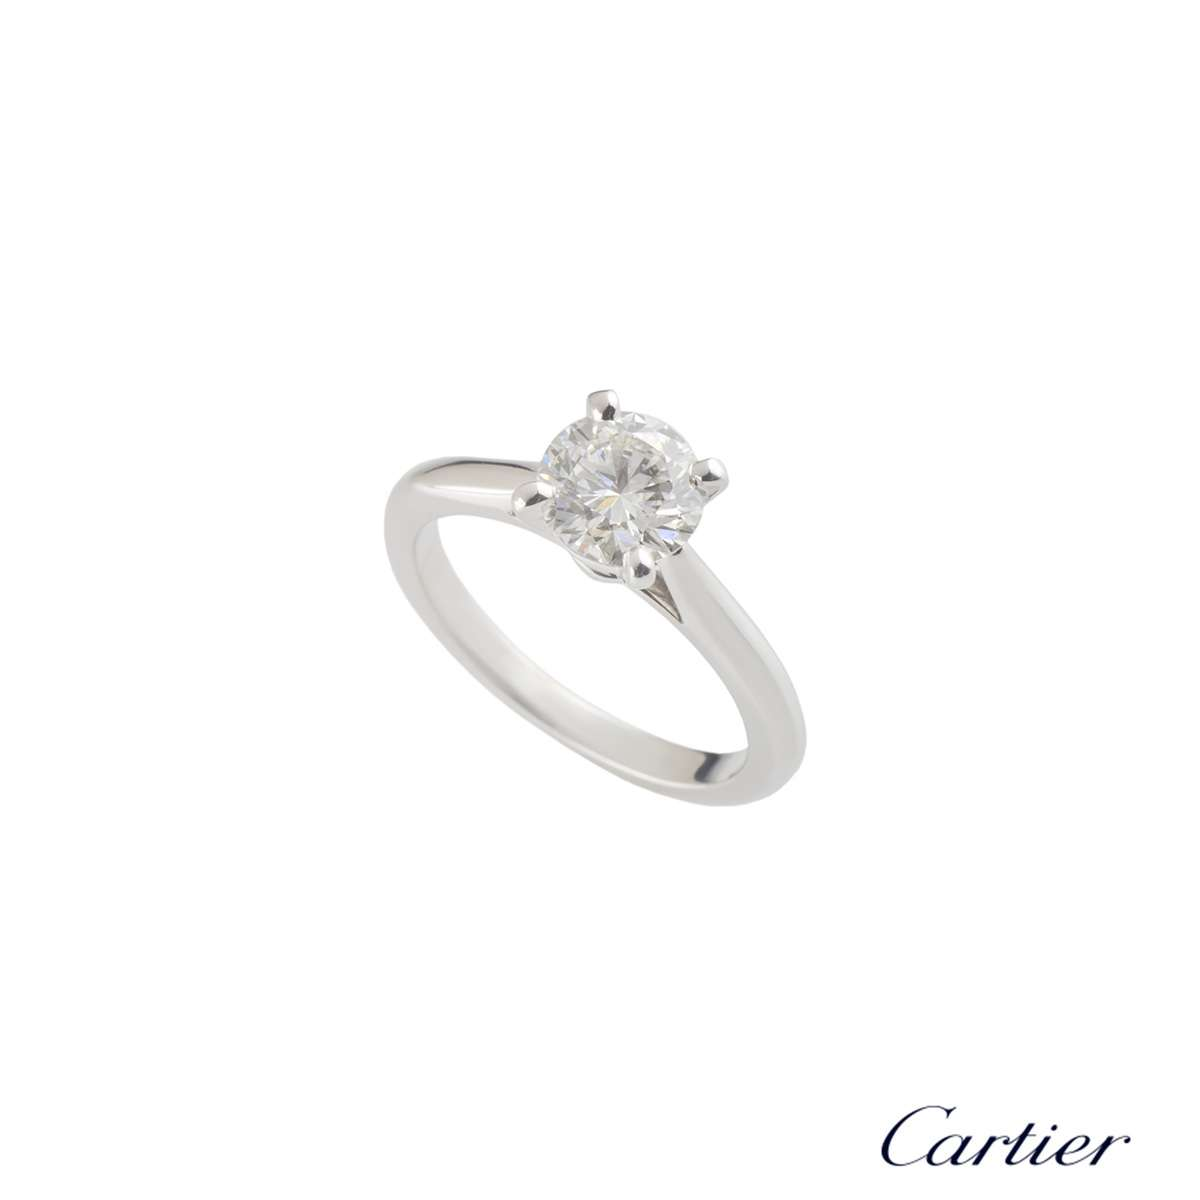 Cartier Platinum Diamond 1895 Solitaire Ring 1.09ct G/VVS2 XXX N4163650